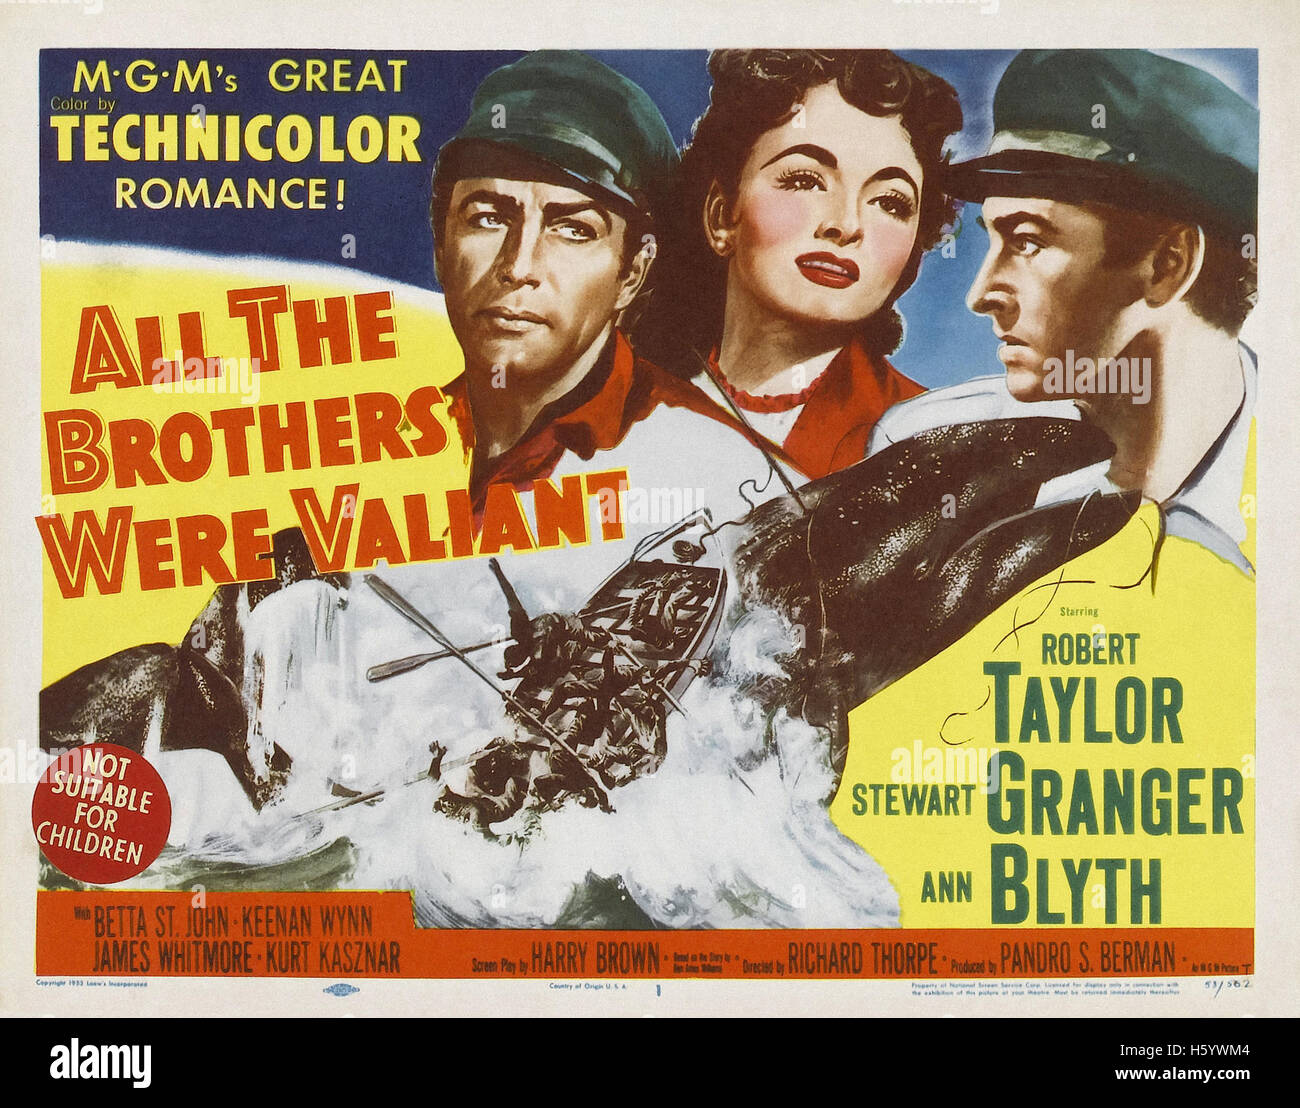 All the Brothers Were Valiant (1953) - Movie Poster - Stock Image